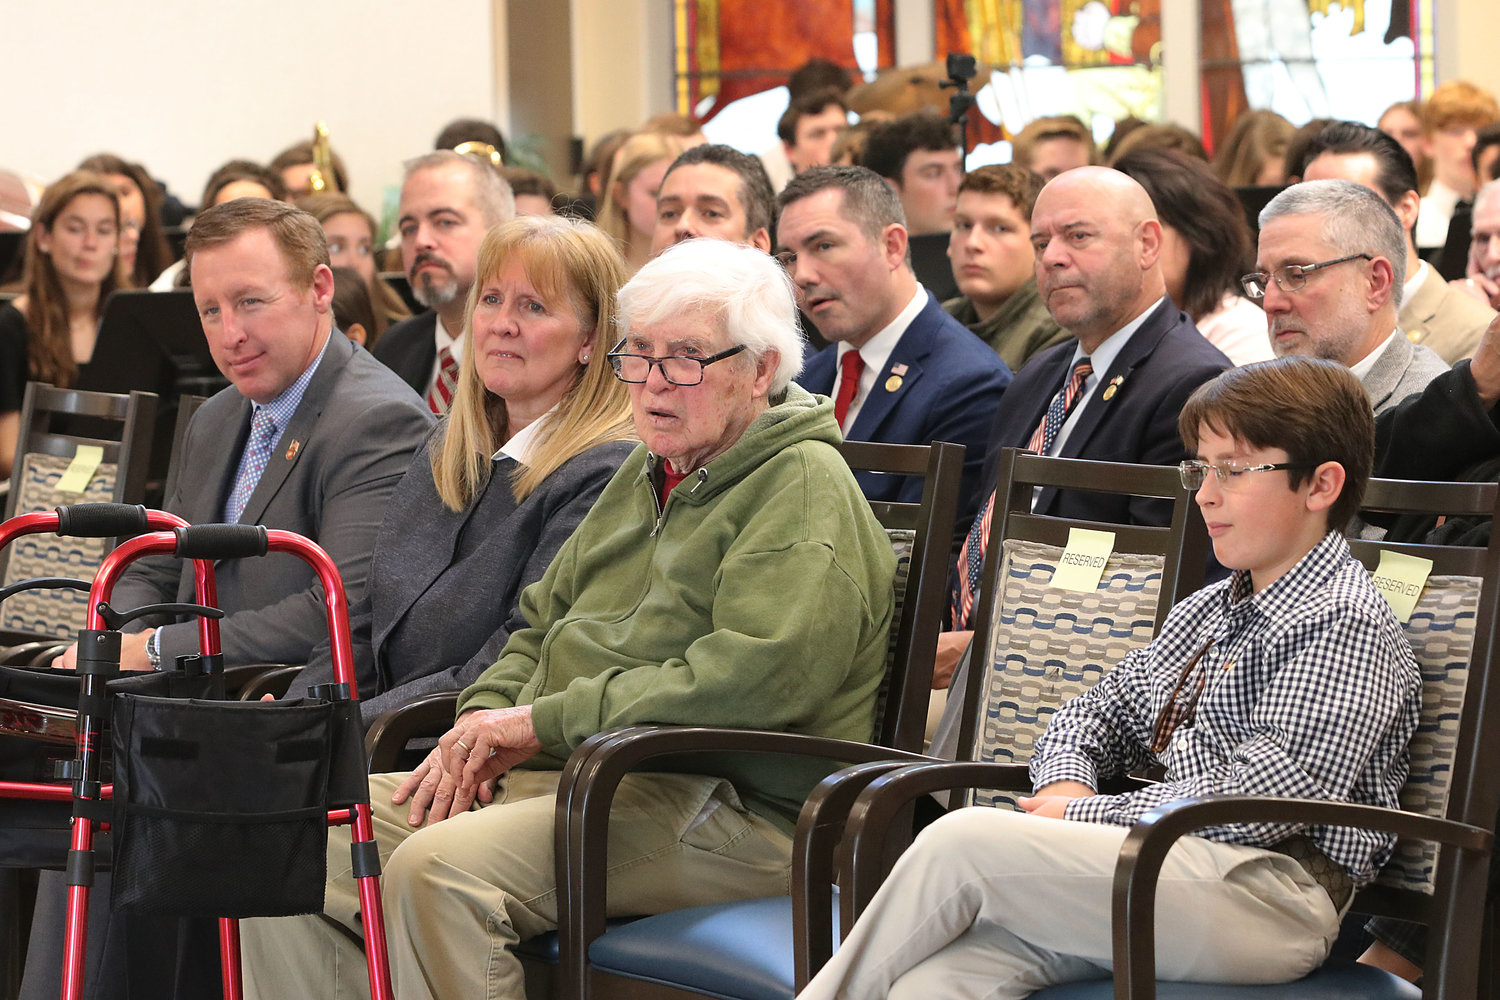 Veterans and politicians look on during the ceremony.